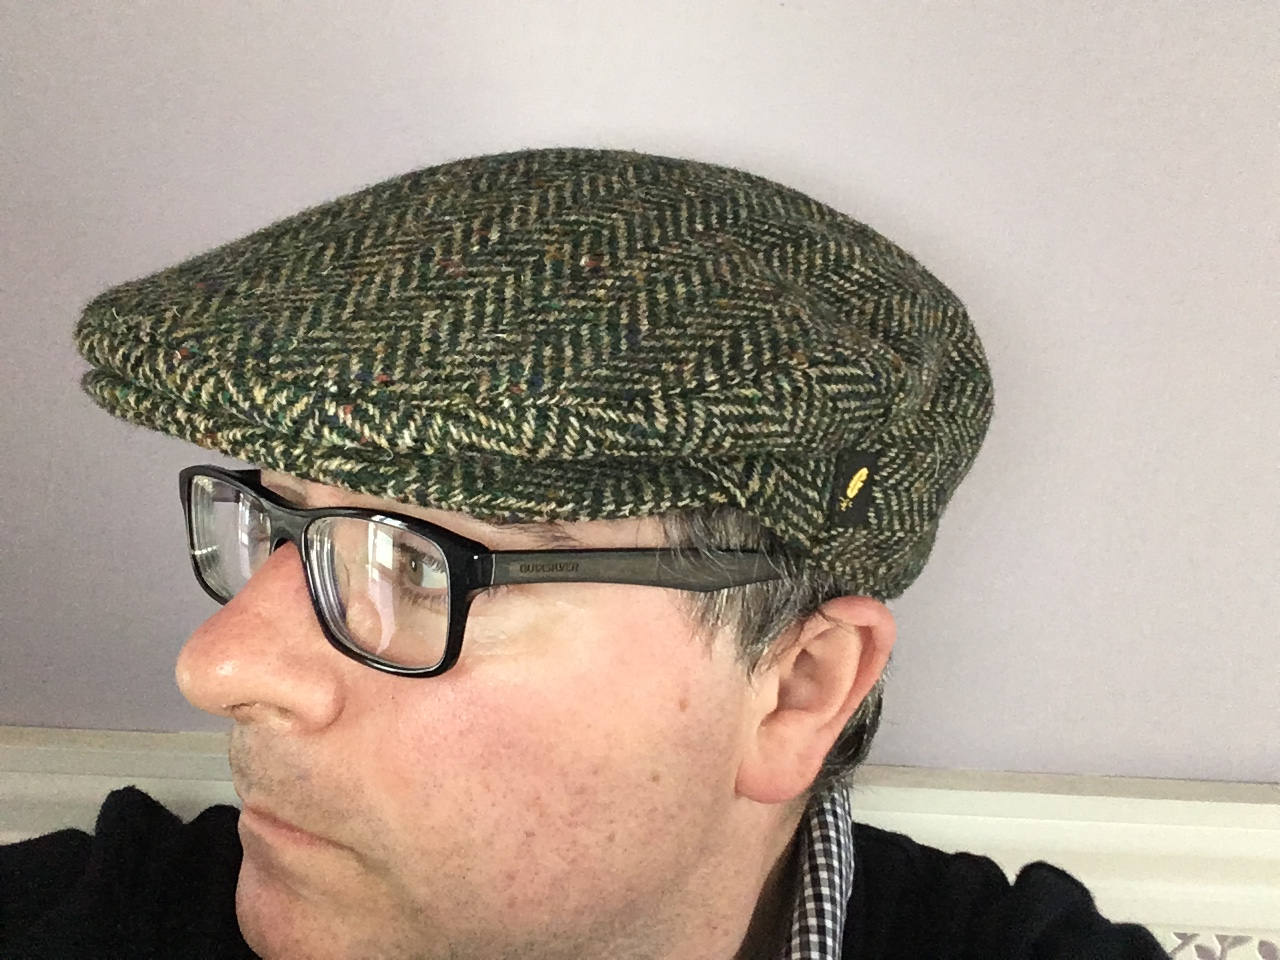 Authentic Donegal Tweed Irish Flat Cap - Herringbone Light Green ... 728d0e8a84d3